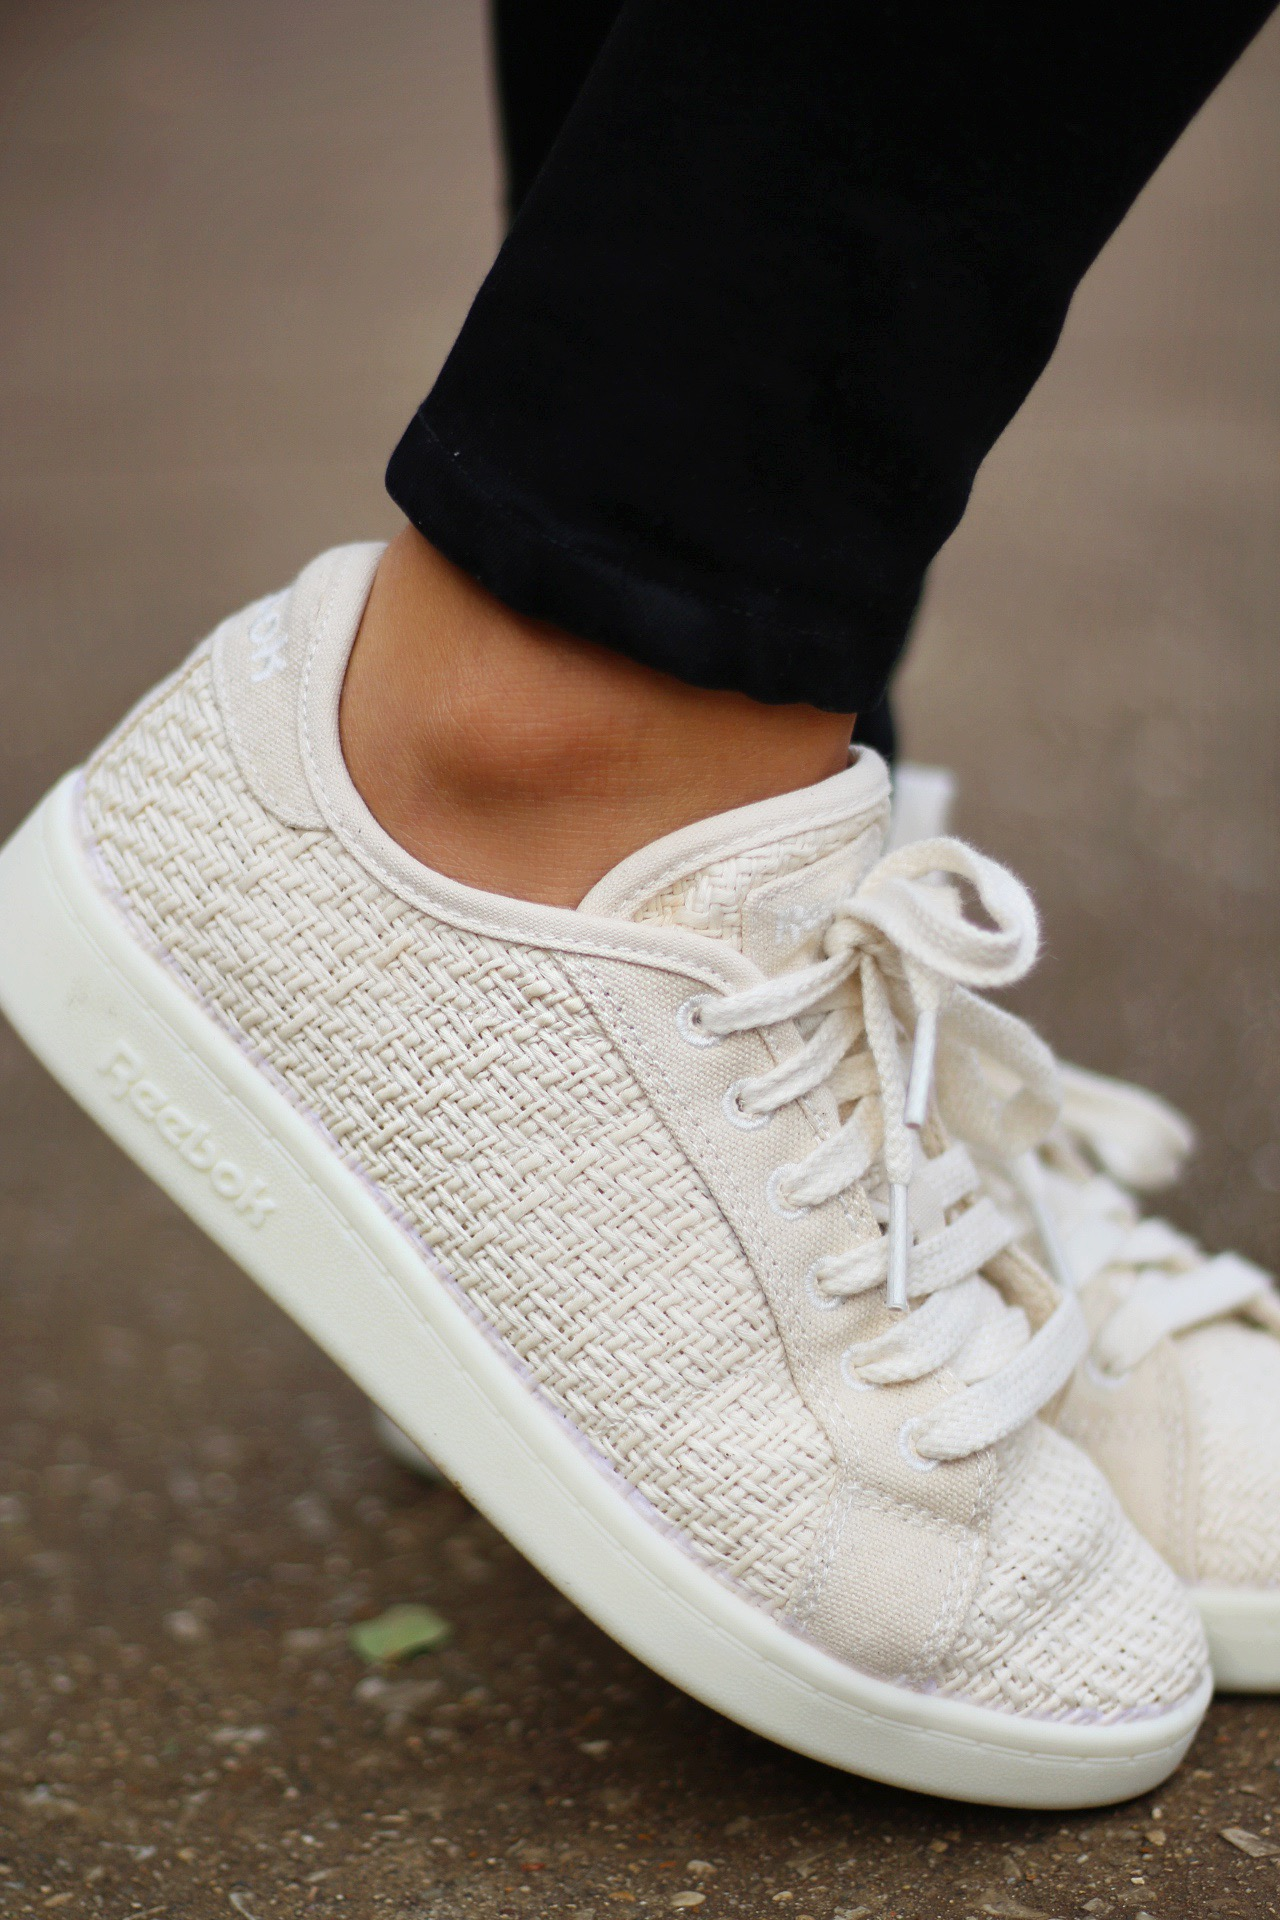 01265b75283 The NEW Reebok Cotton + Corn shoes - Available at Zappos - WAYS OF STYLE